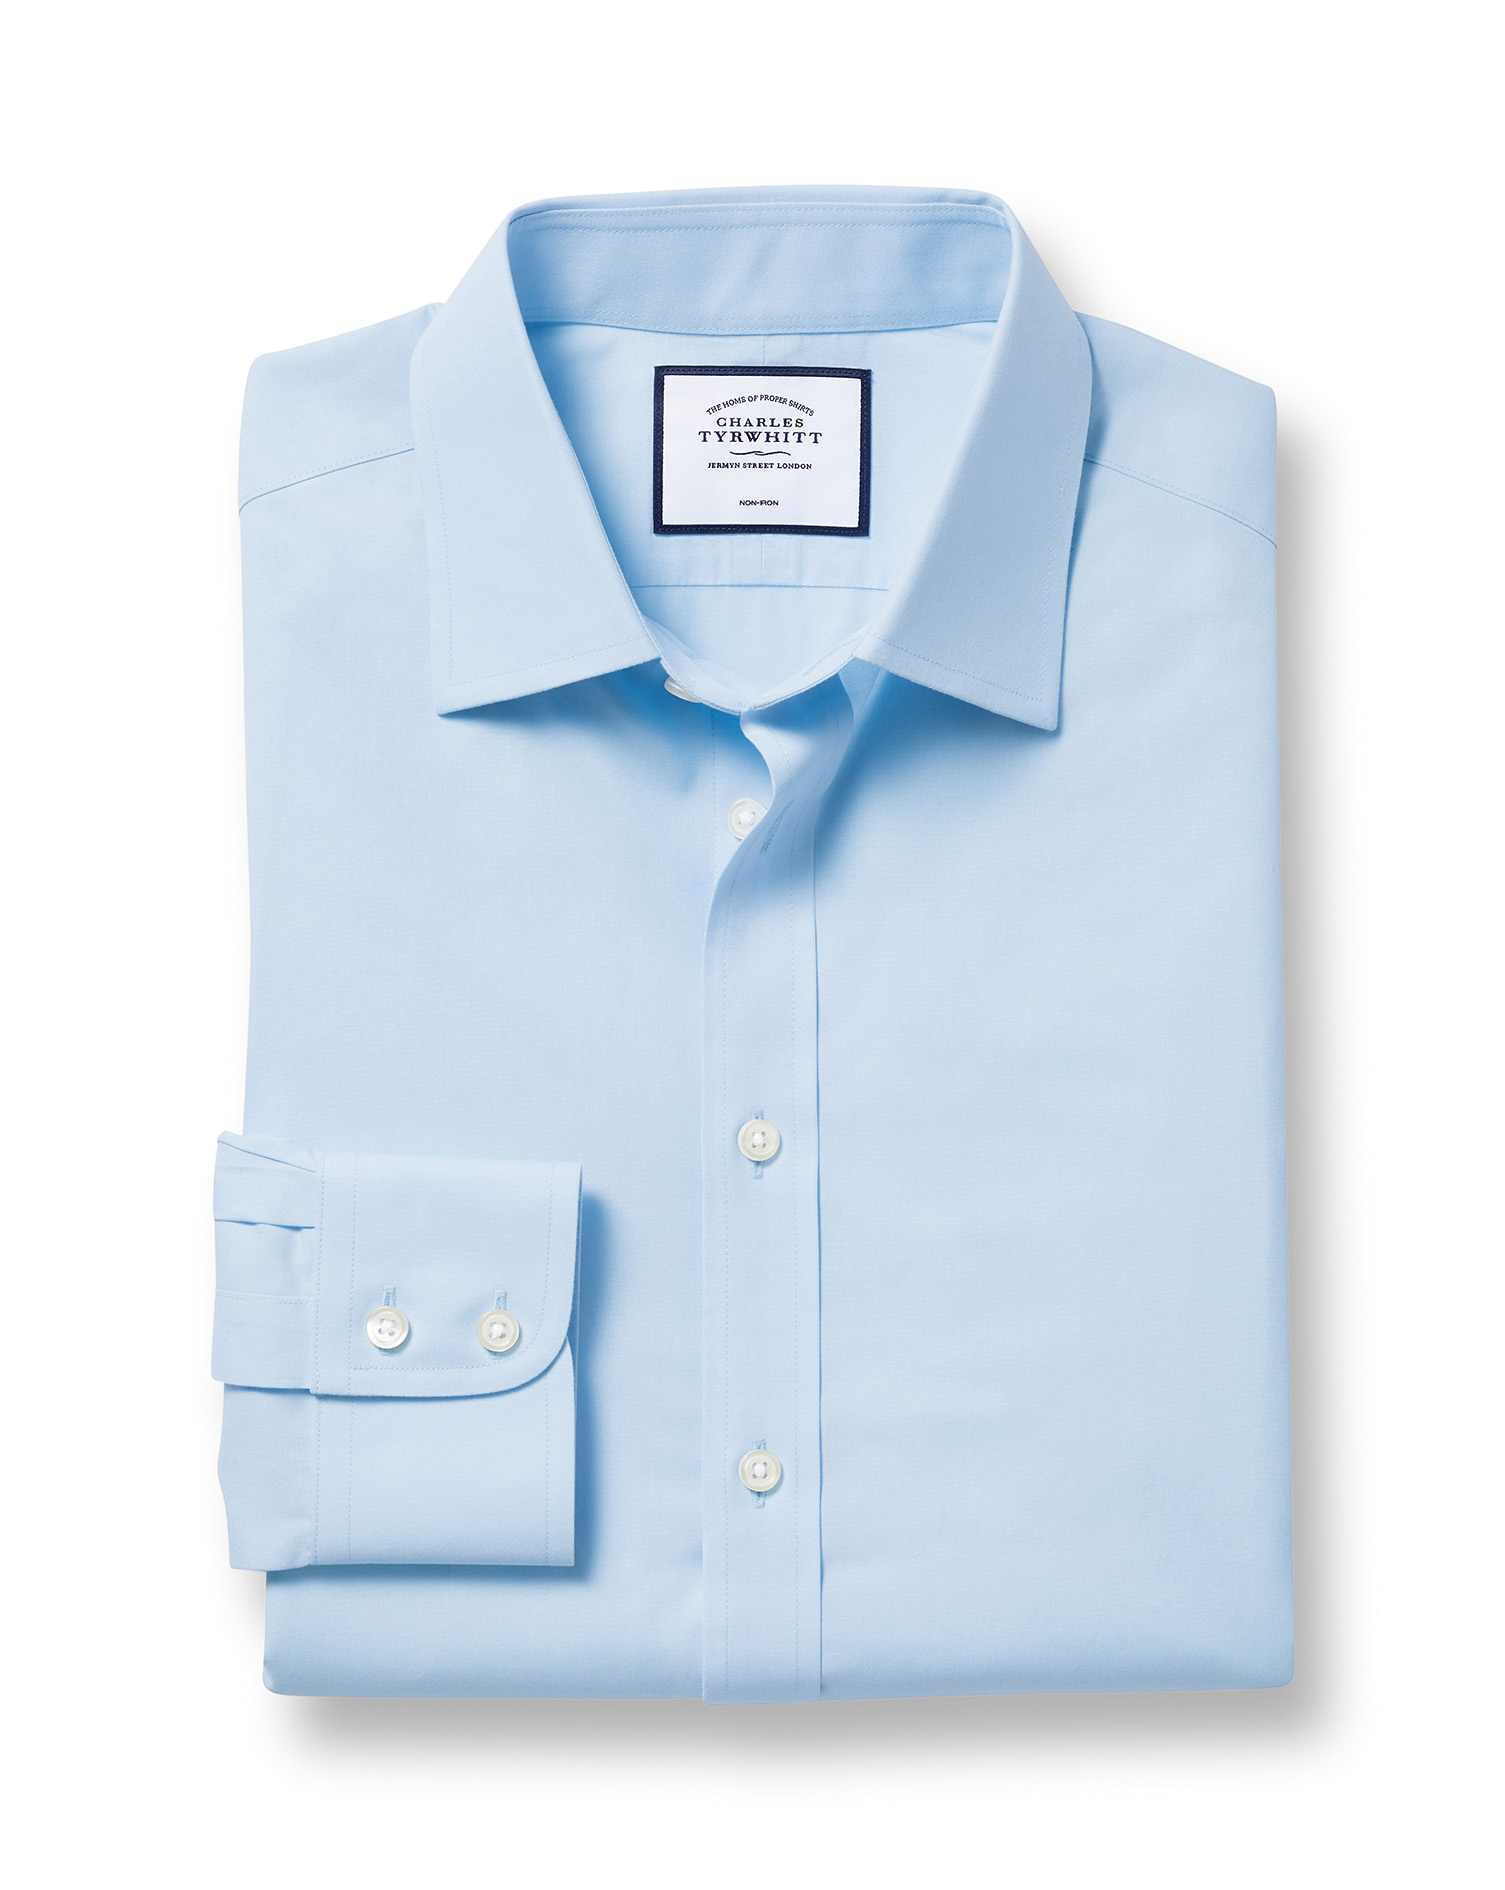 Classic Fit Non-Iron Poplin Sky Blue Cotton Formal Shirt Double Cuff Size 15/33 by Charles Tyrwhitt